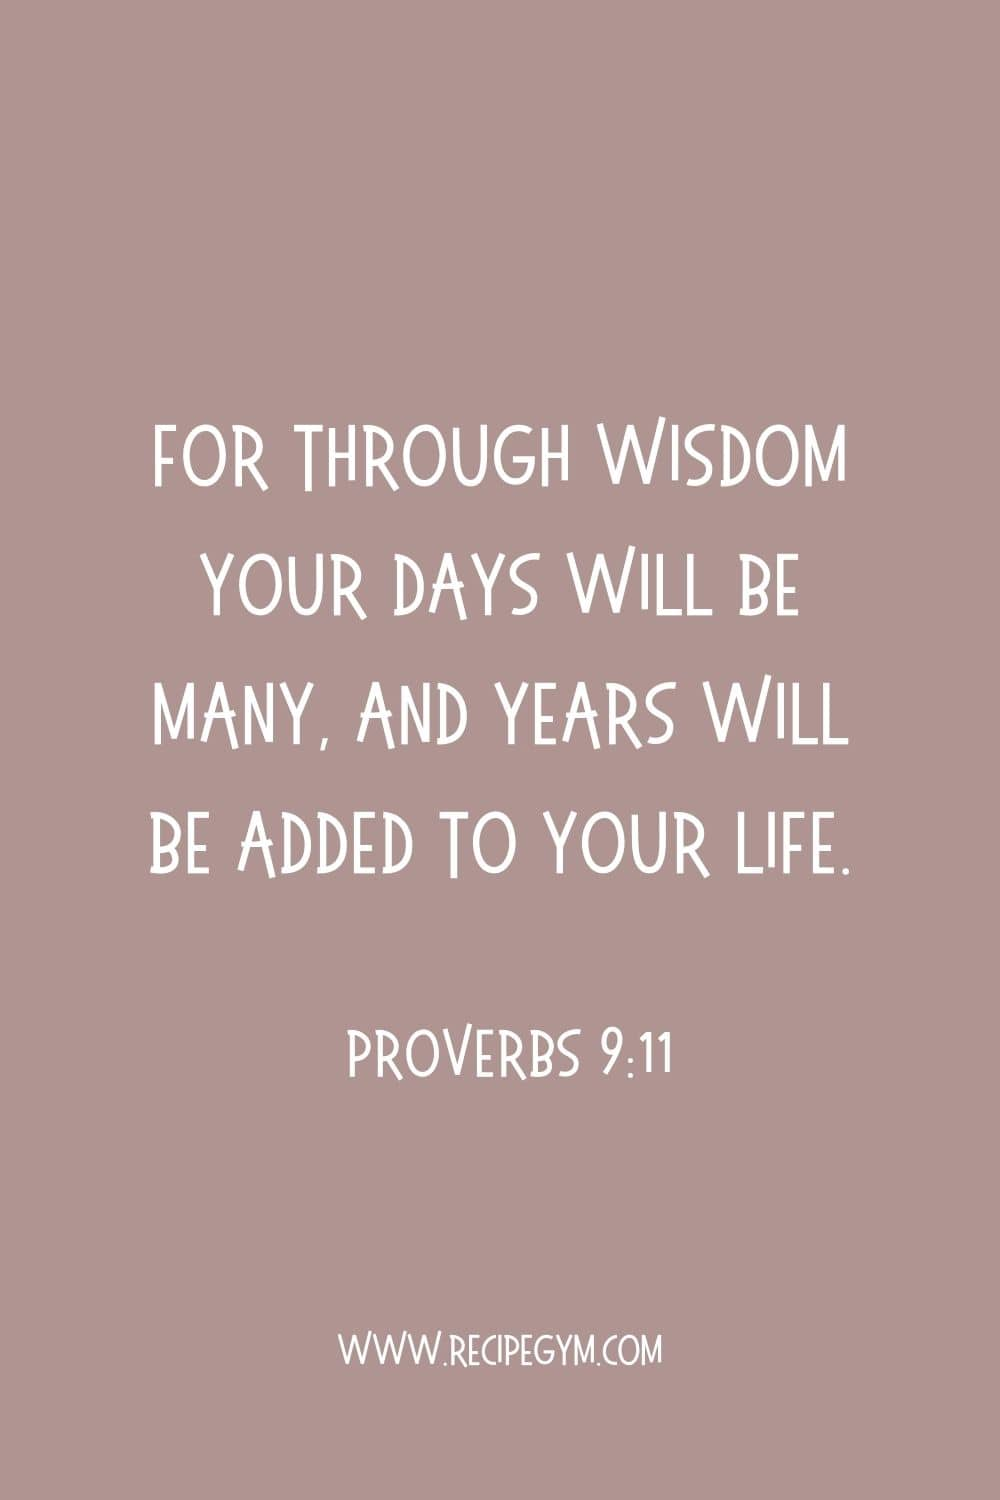 20 powerful bible verses about wisdom | faith fitness food